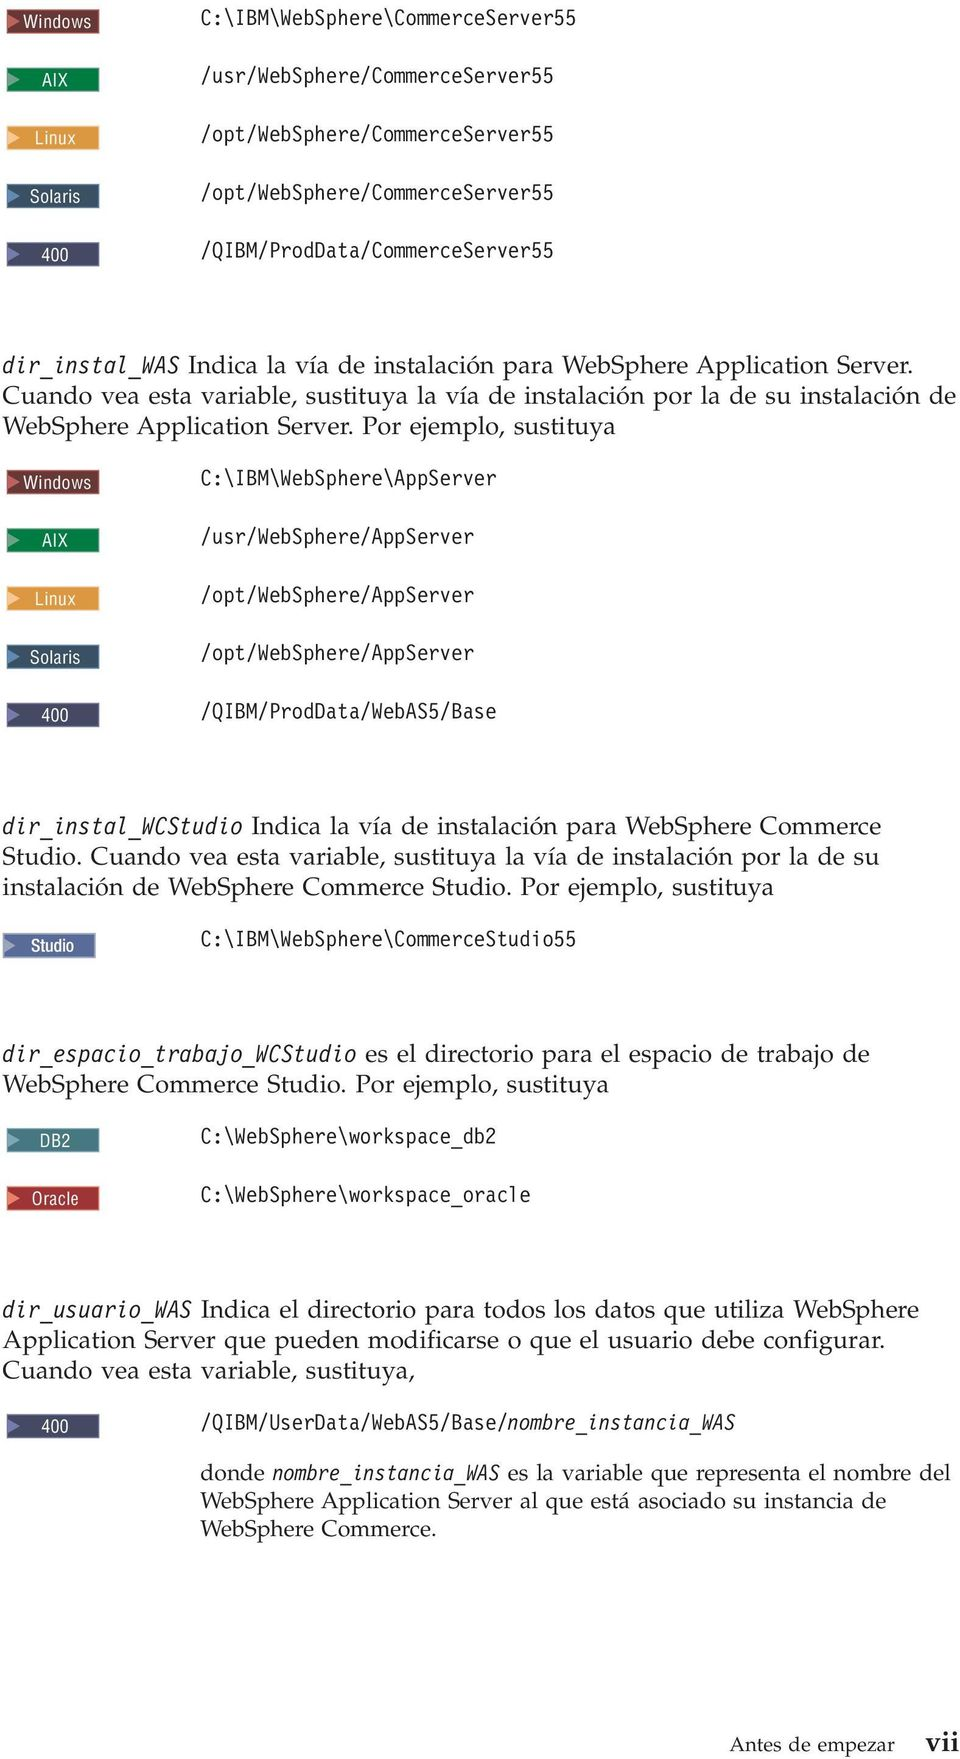 Por ejemplo, sustituya Windows AIX Linux Solaris C:\IBM\WebSphere\AppServer /usr/websphere/appserver /opt/websphere/appserver /opt/websphere/appserver 400 /QIBM/ProdData/WebAS5/Base